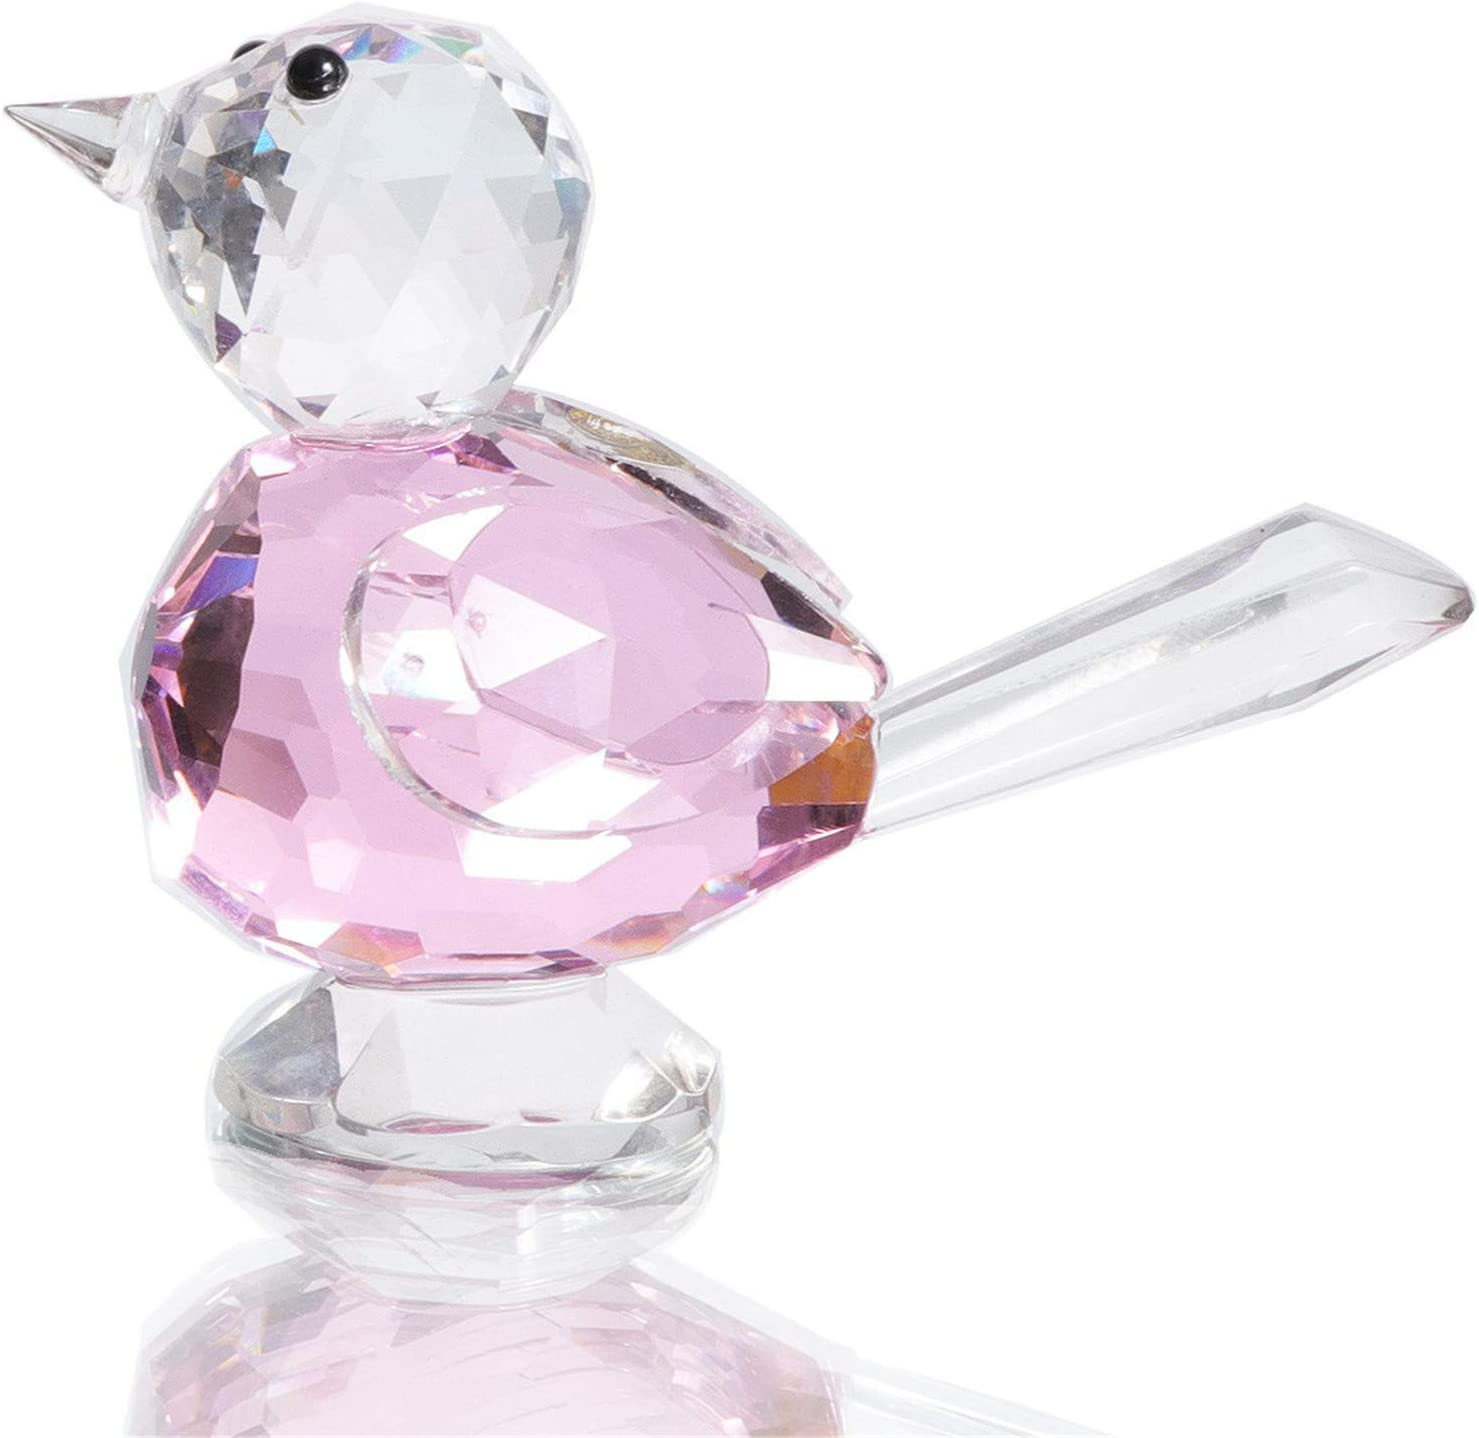 Waltz&F Crystal Pink Bird Collectible Figurine Home Office Table Decoration